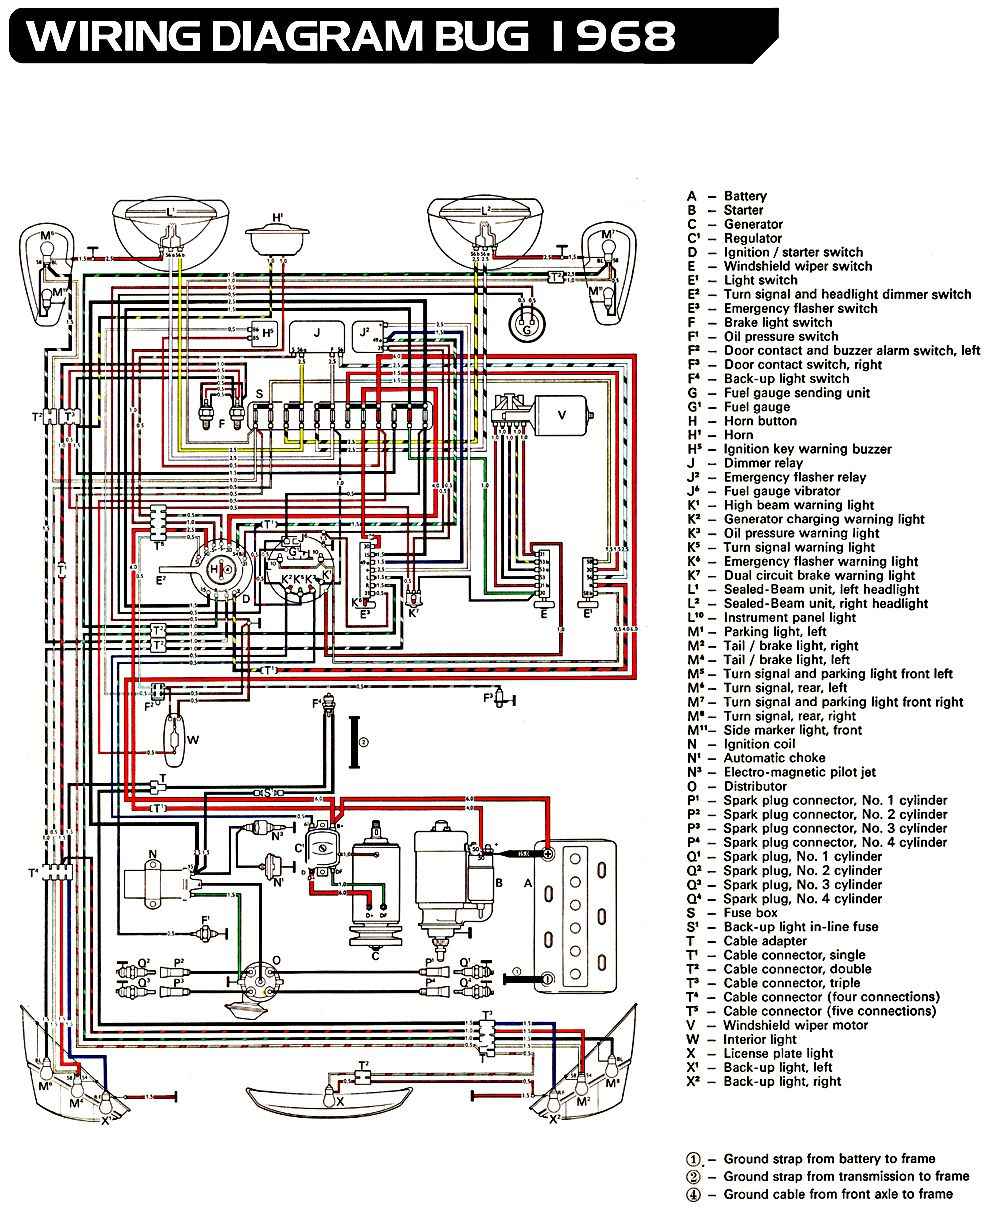 3a1908112d3826270ed5e3be362292bf vw bug ignition wiring diagram 73 vw wiring diagram free beetle wiring harness at gsmx.co